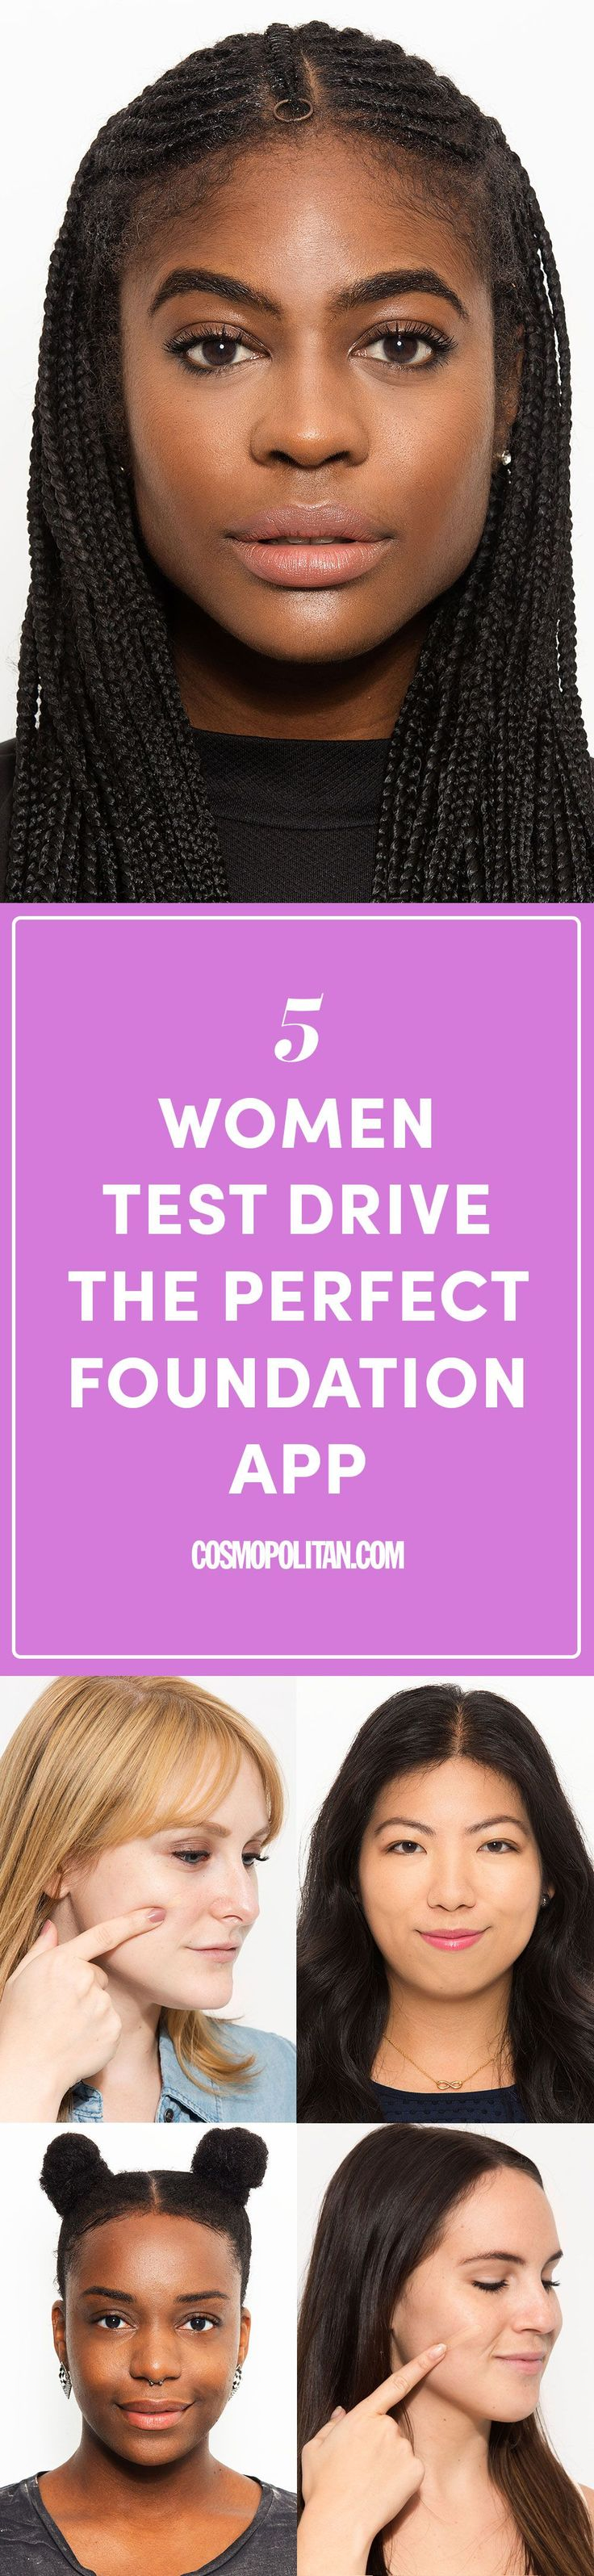 5 Women Tried This App to Find the Perfect Foundation Match and Here's What the Shades Look Like On - Cosmopolitan.com